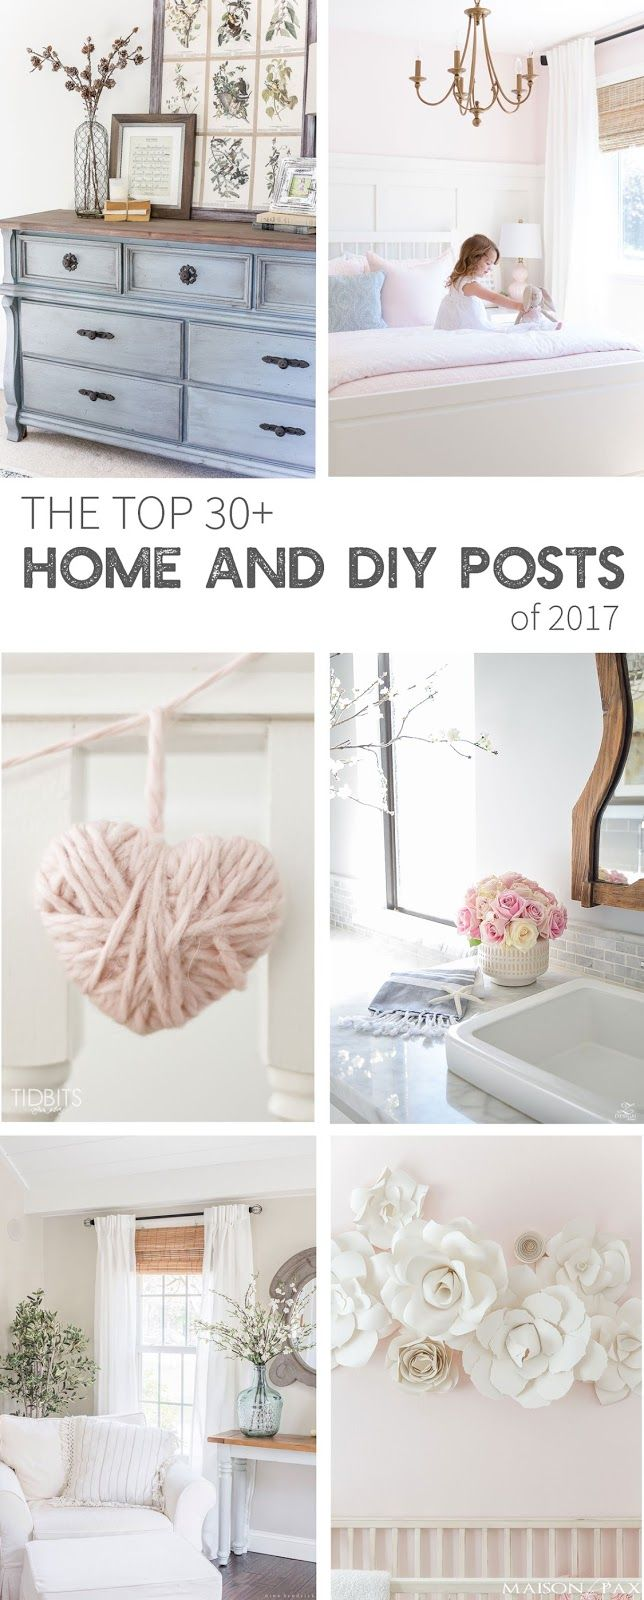 Top Ten Home Decorating And Diy Posts For 2017 Home Decor Decor